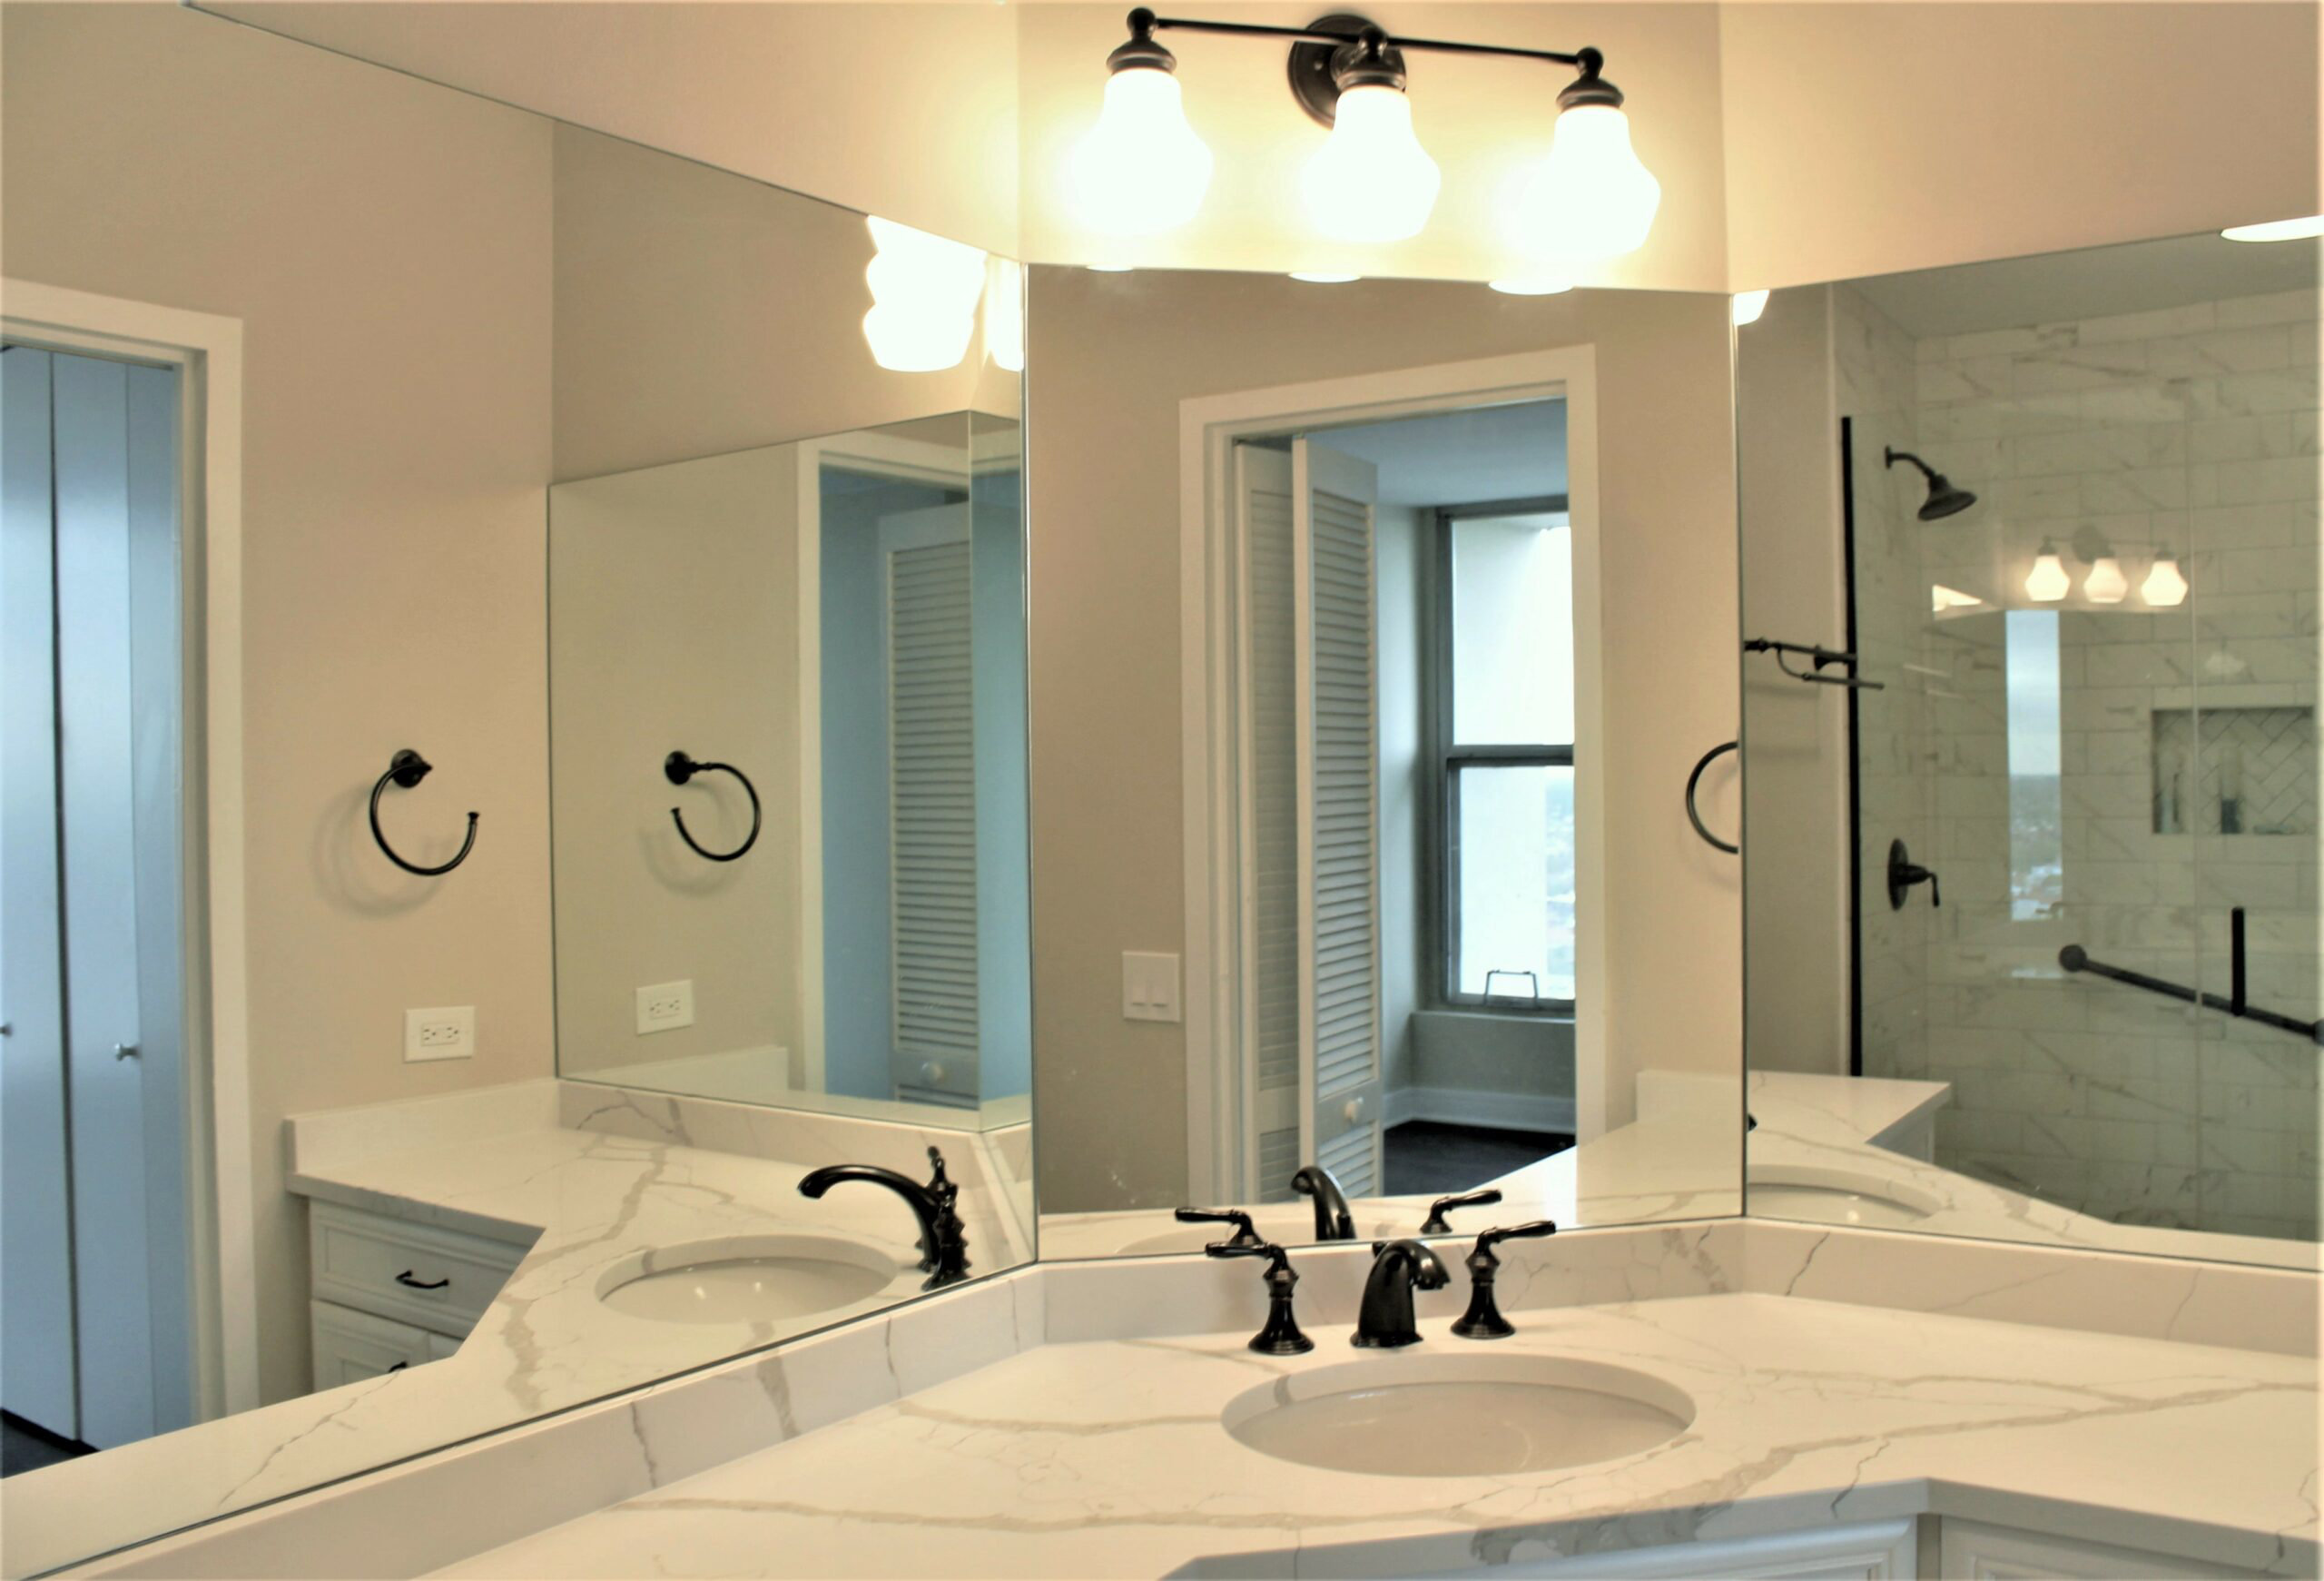 Chicago Lake Shore Harbor House Master Bathroom Remodel